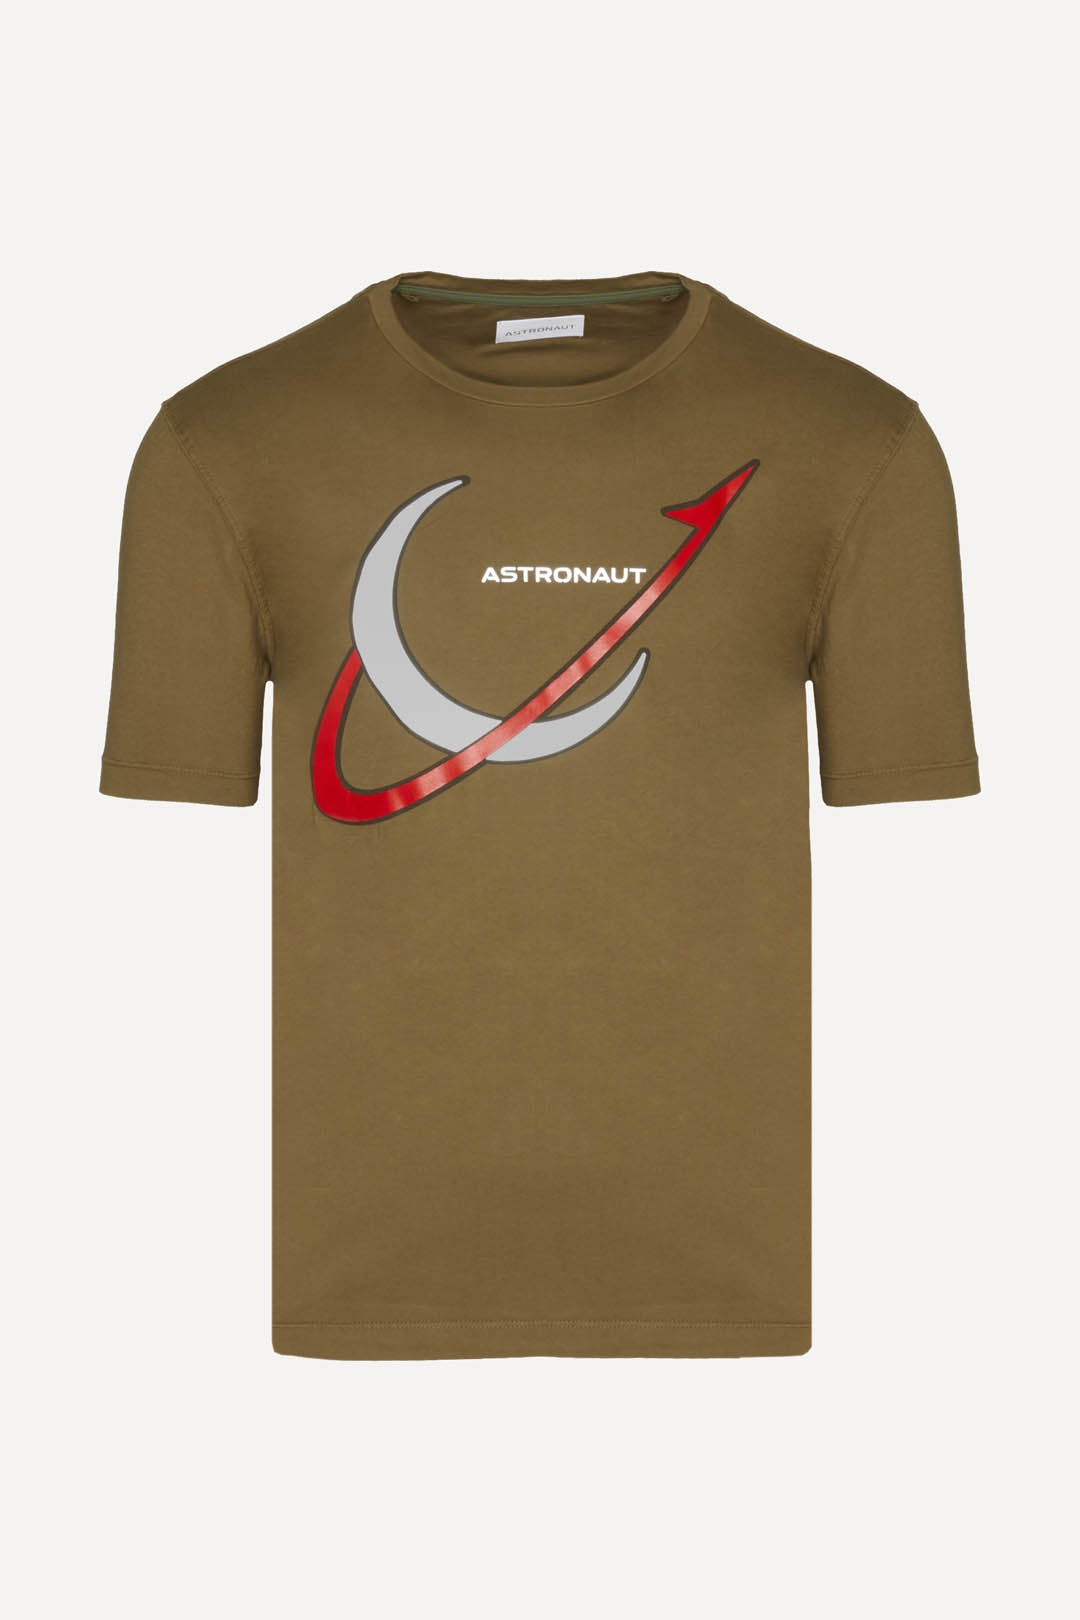 Astronaut T-shirt with reflective logo   1